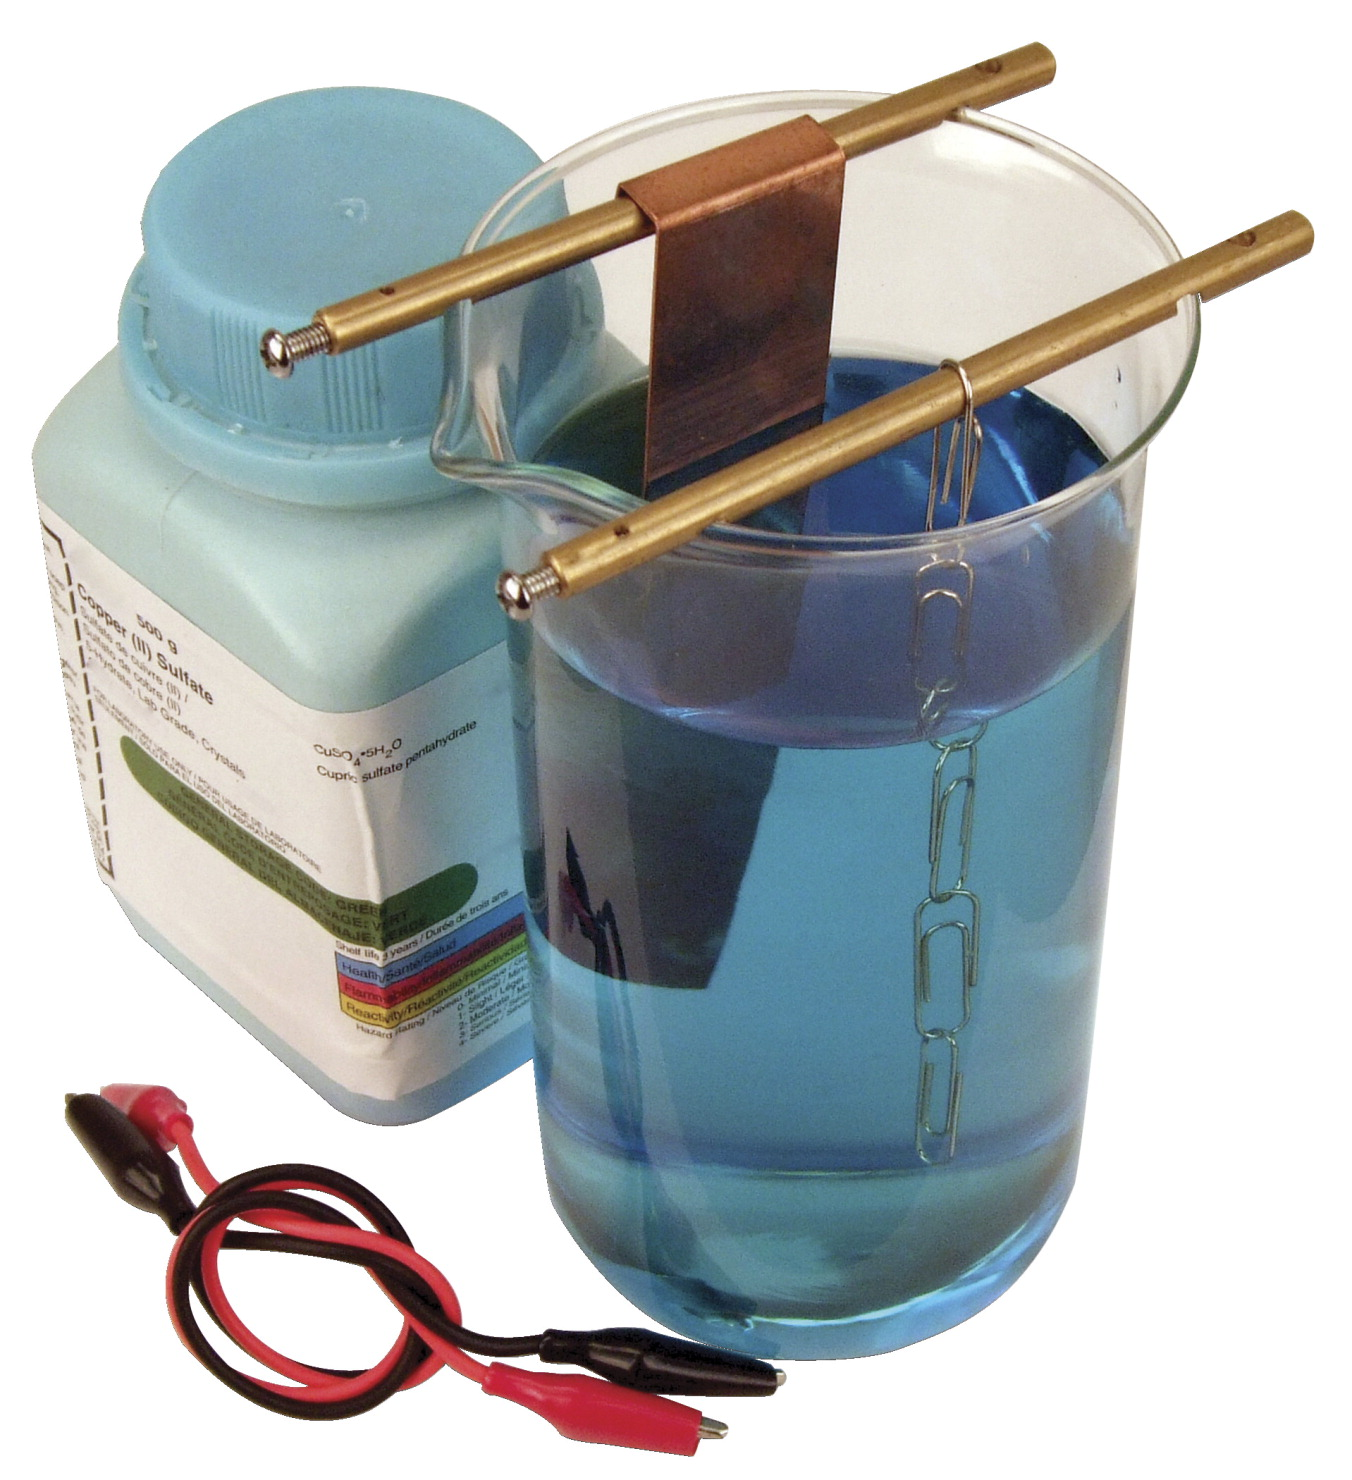 Science First Copper Plating Kit